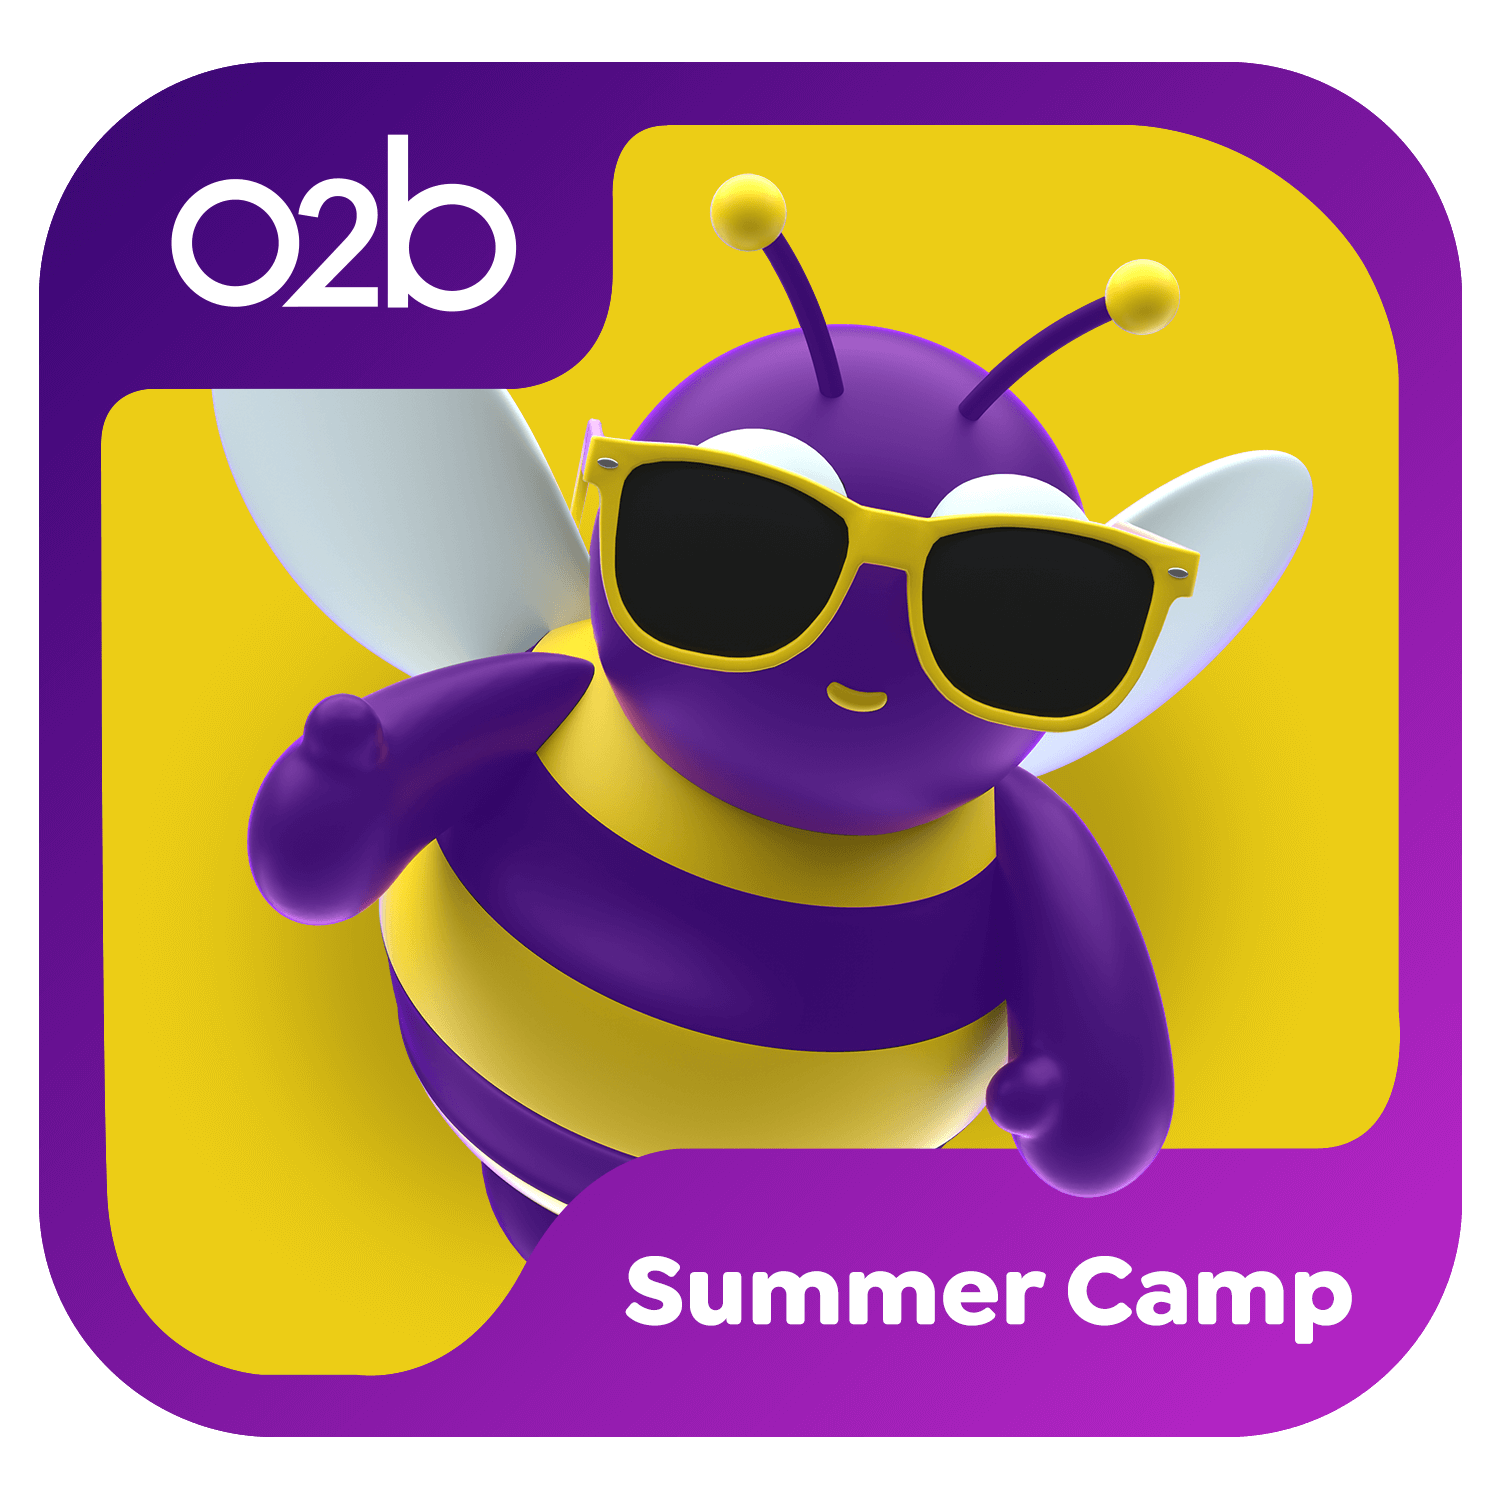 3D Icon with Purple and yellow bee wearing yellow sunglasses. Summer Camp icon